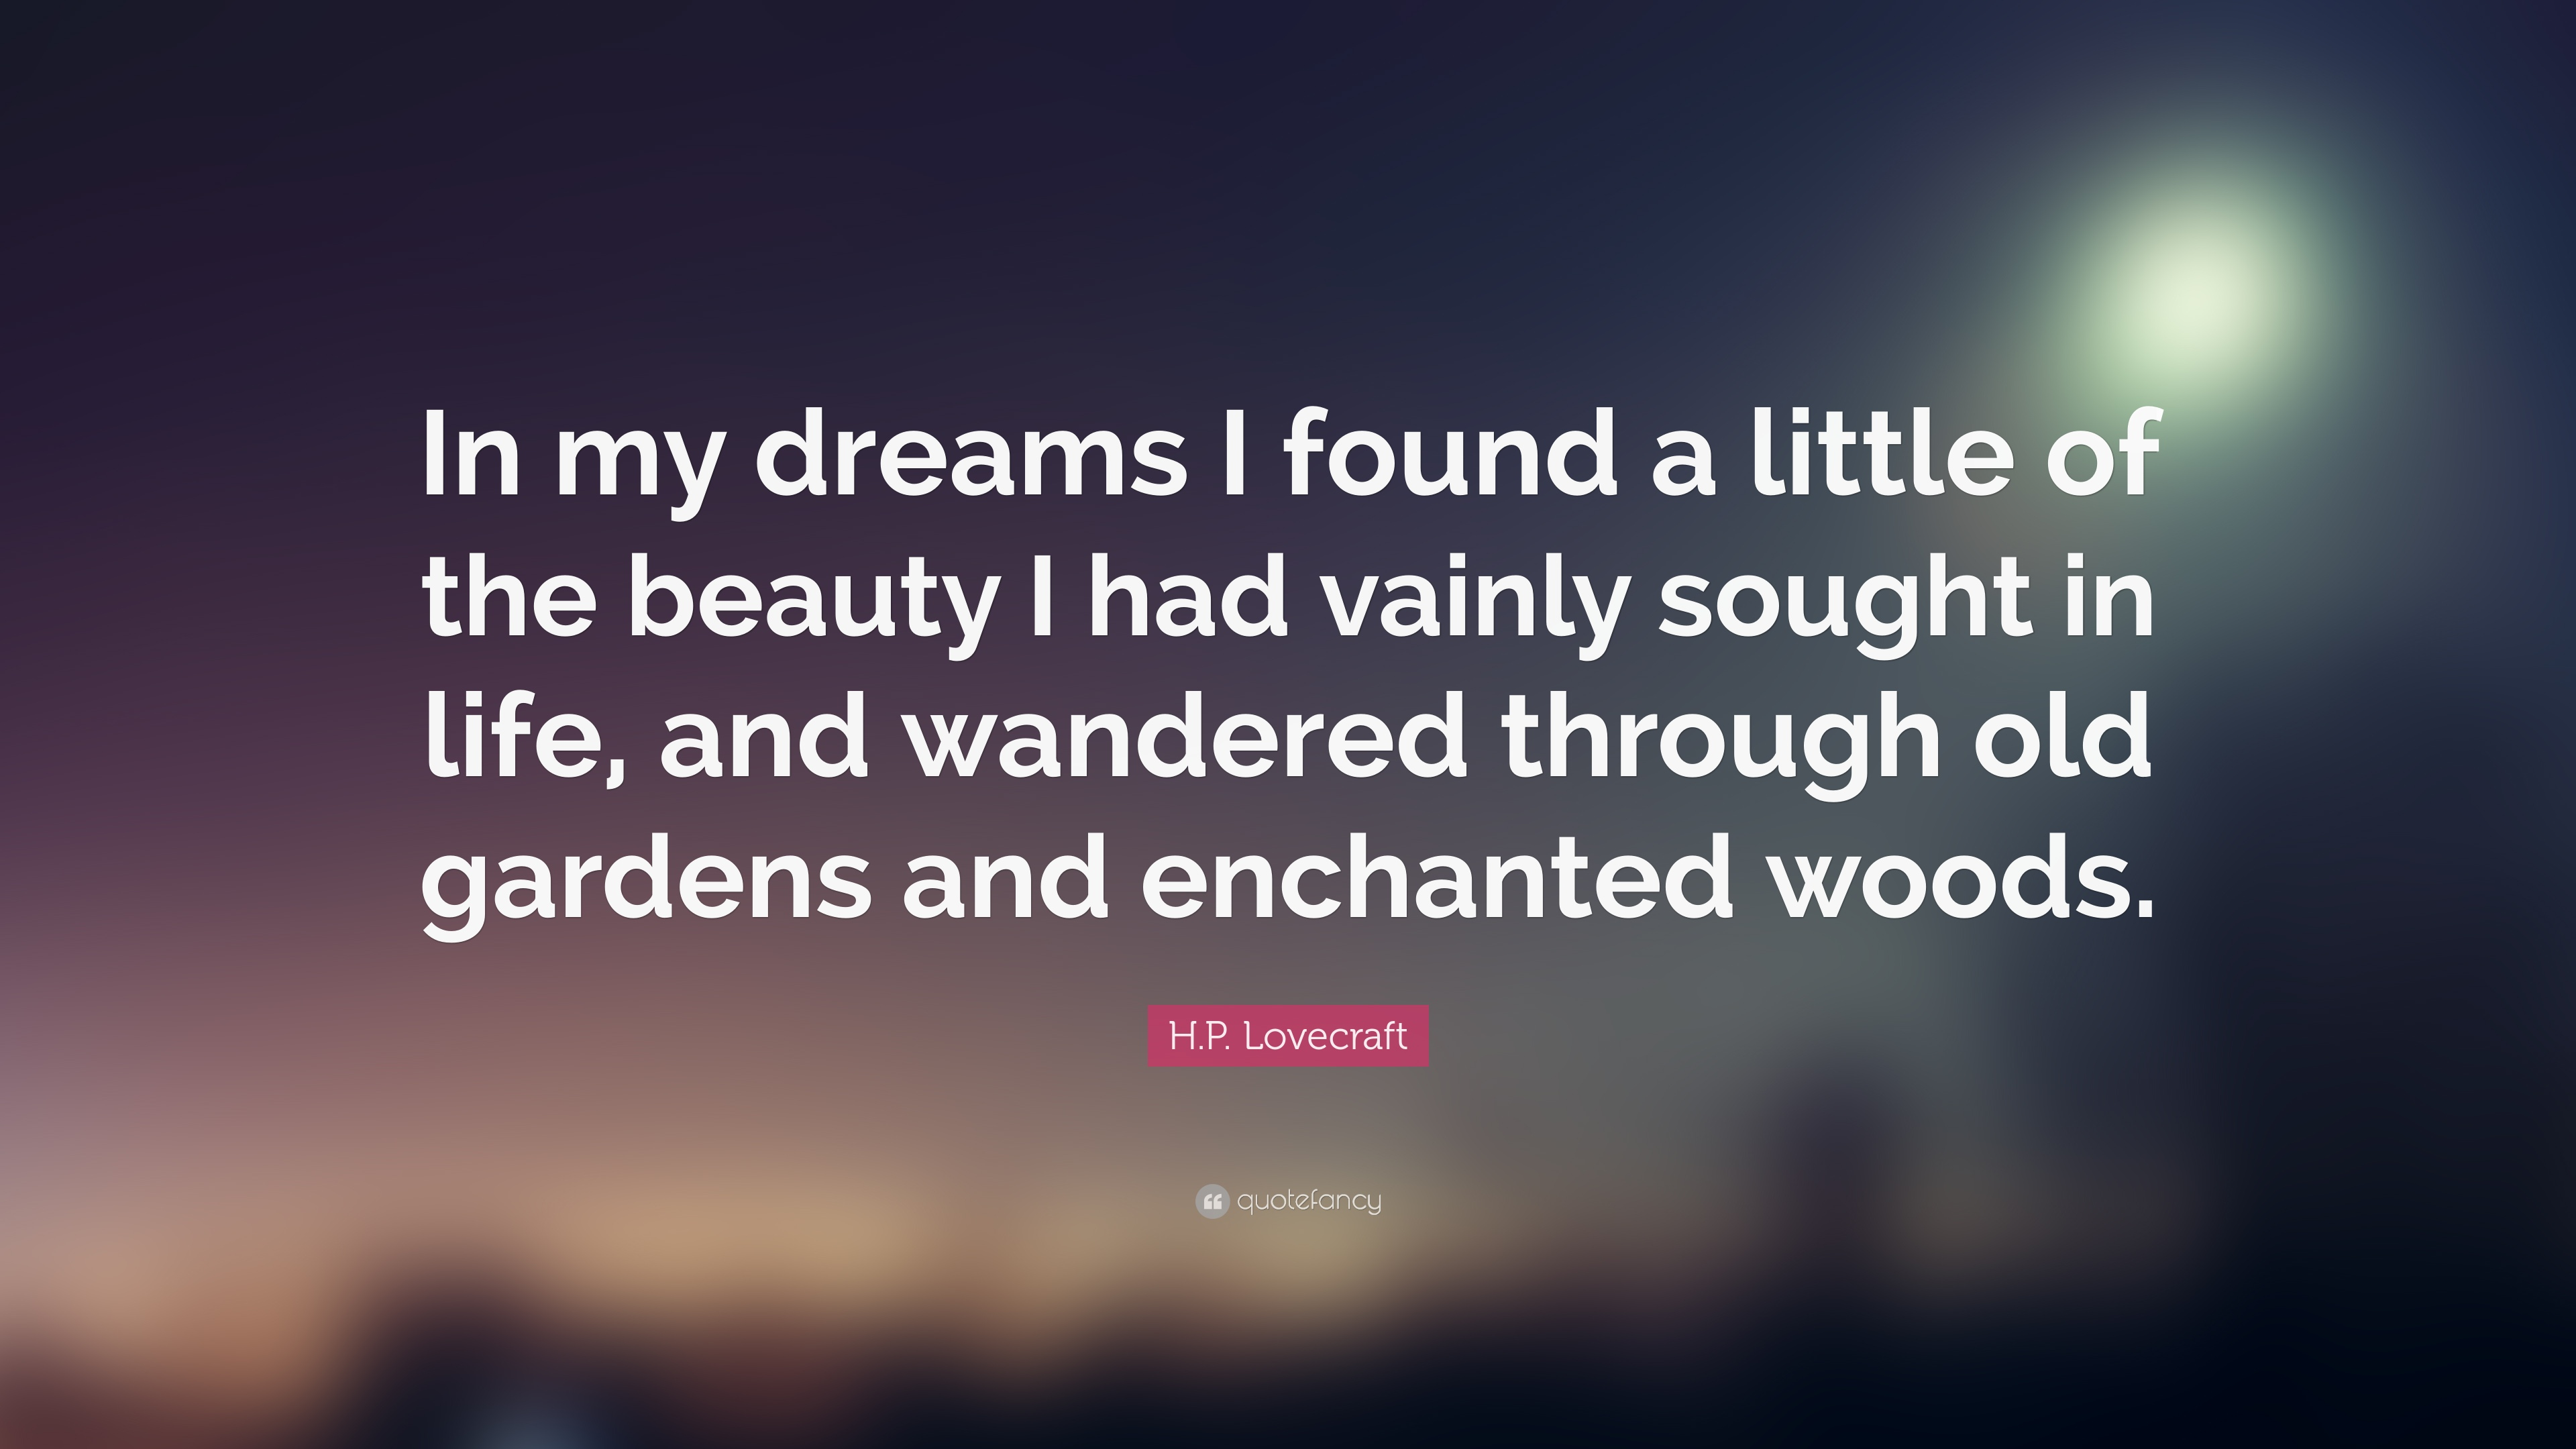 HP Lovecraft Quote In My Dreams I Found A Little Of The Beauty